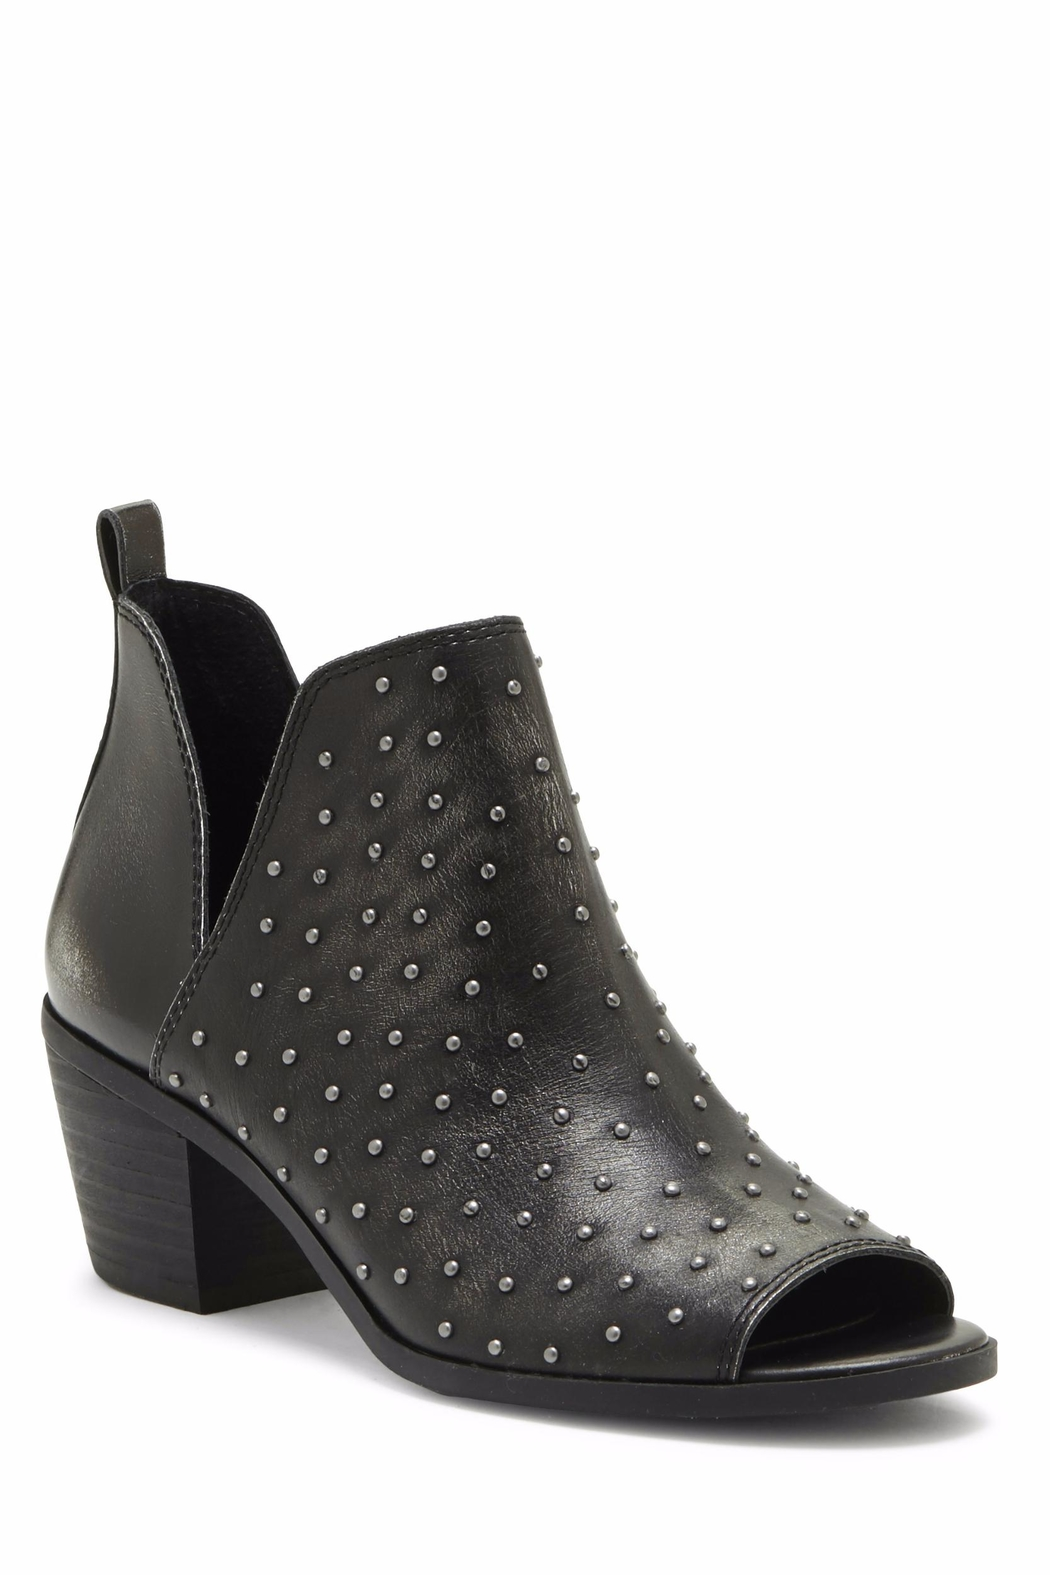 Lucky Brand Barlenna Peep Toe Bootie - Front Full Image